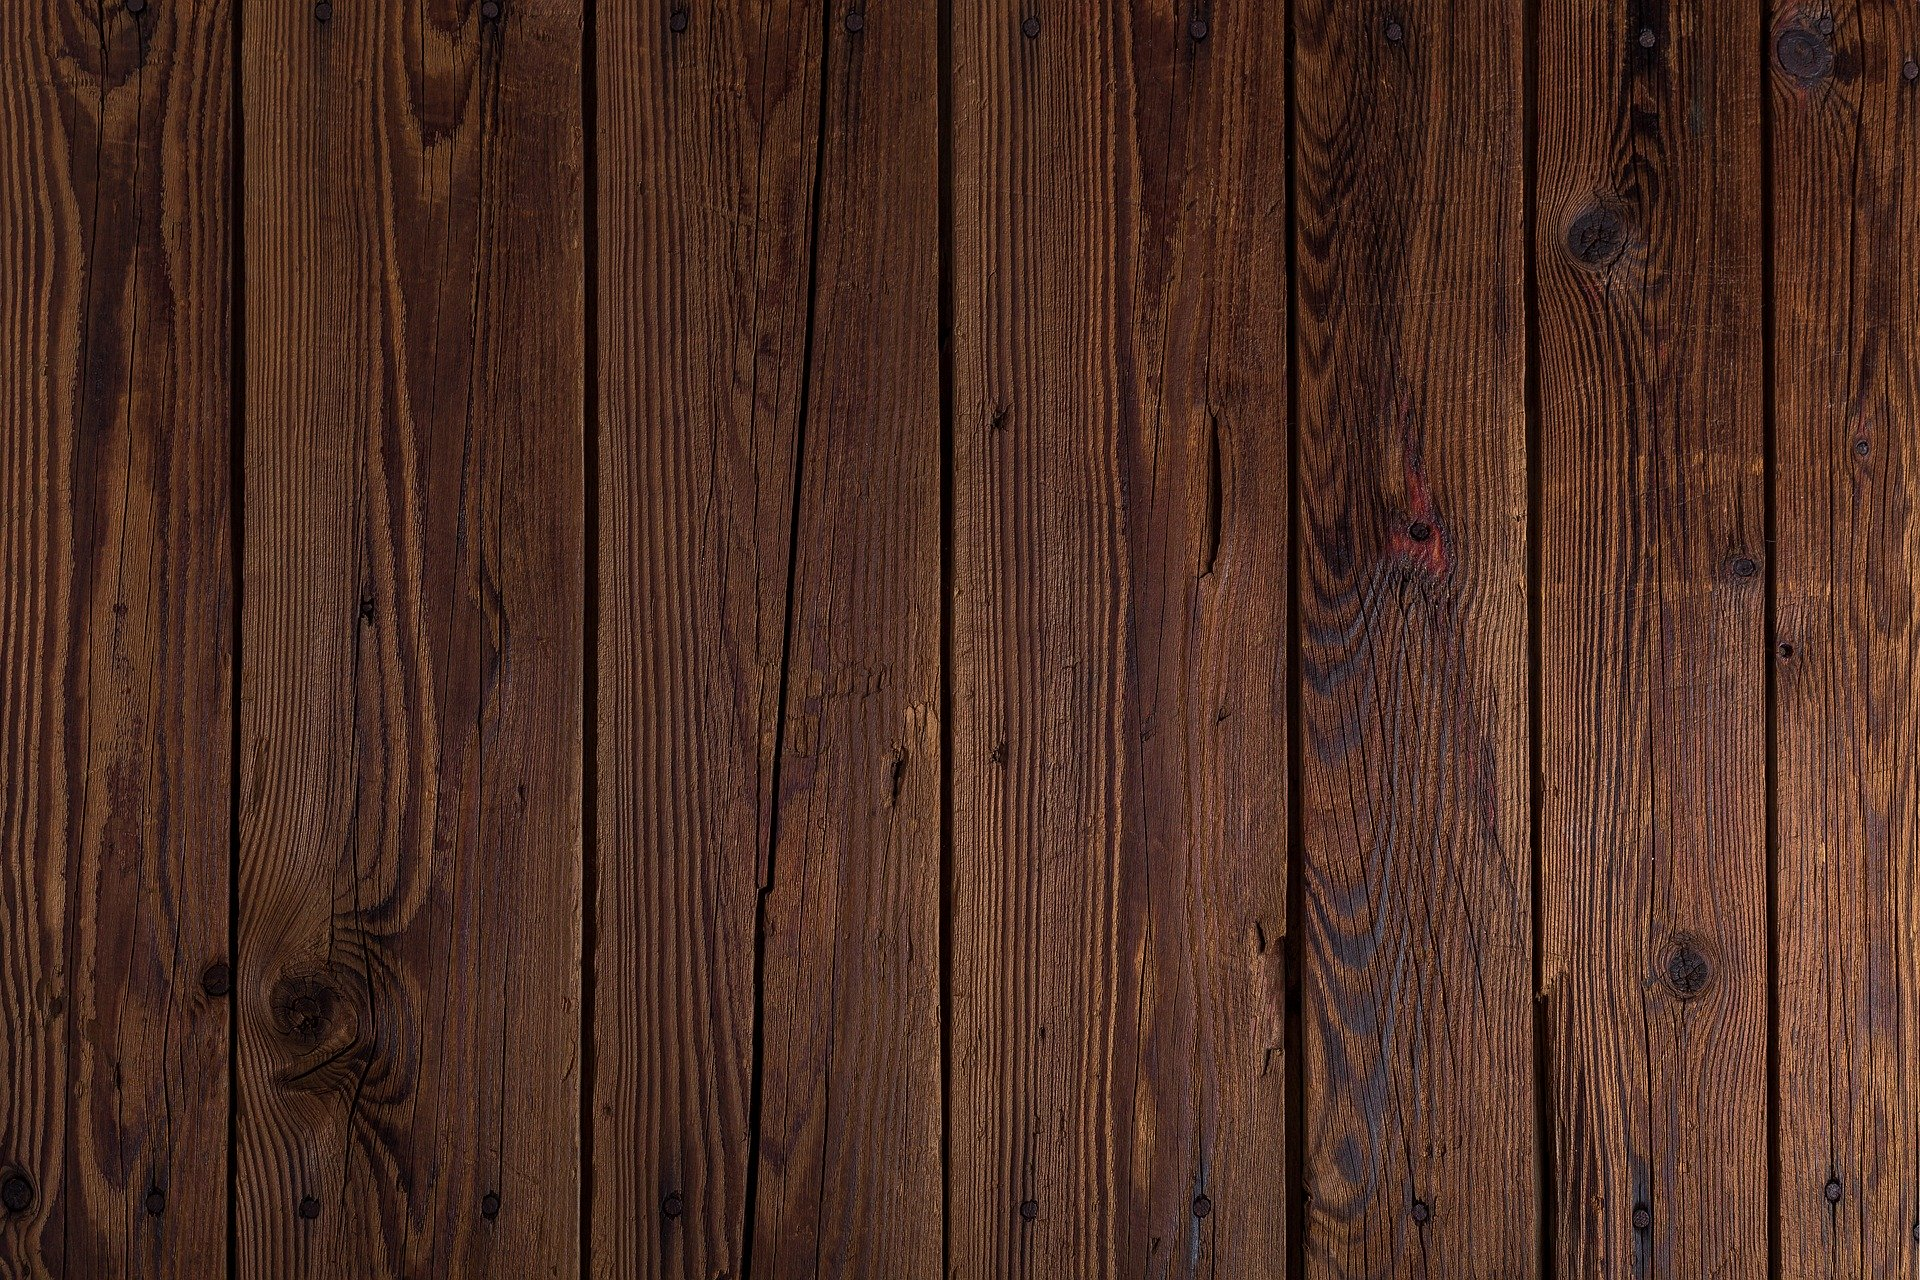 Find Beautiful Barn Wood For Sale